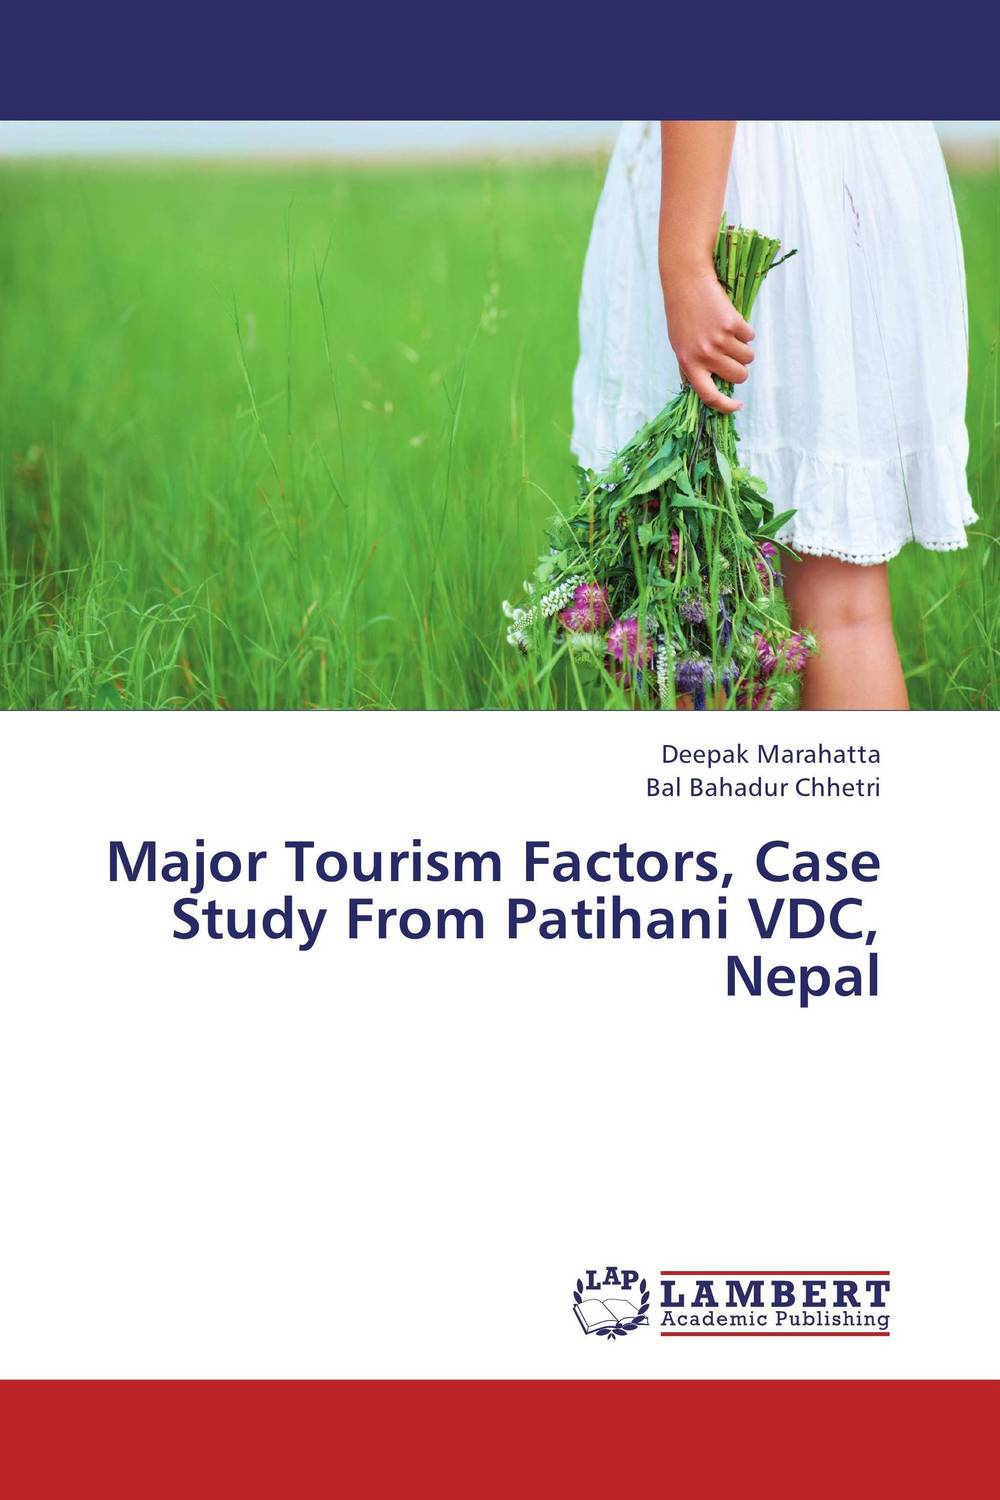 Major Tourism Factors, Case Study From Patihani VDC, Nepal